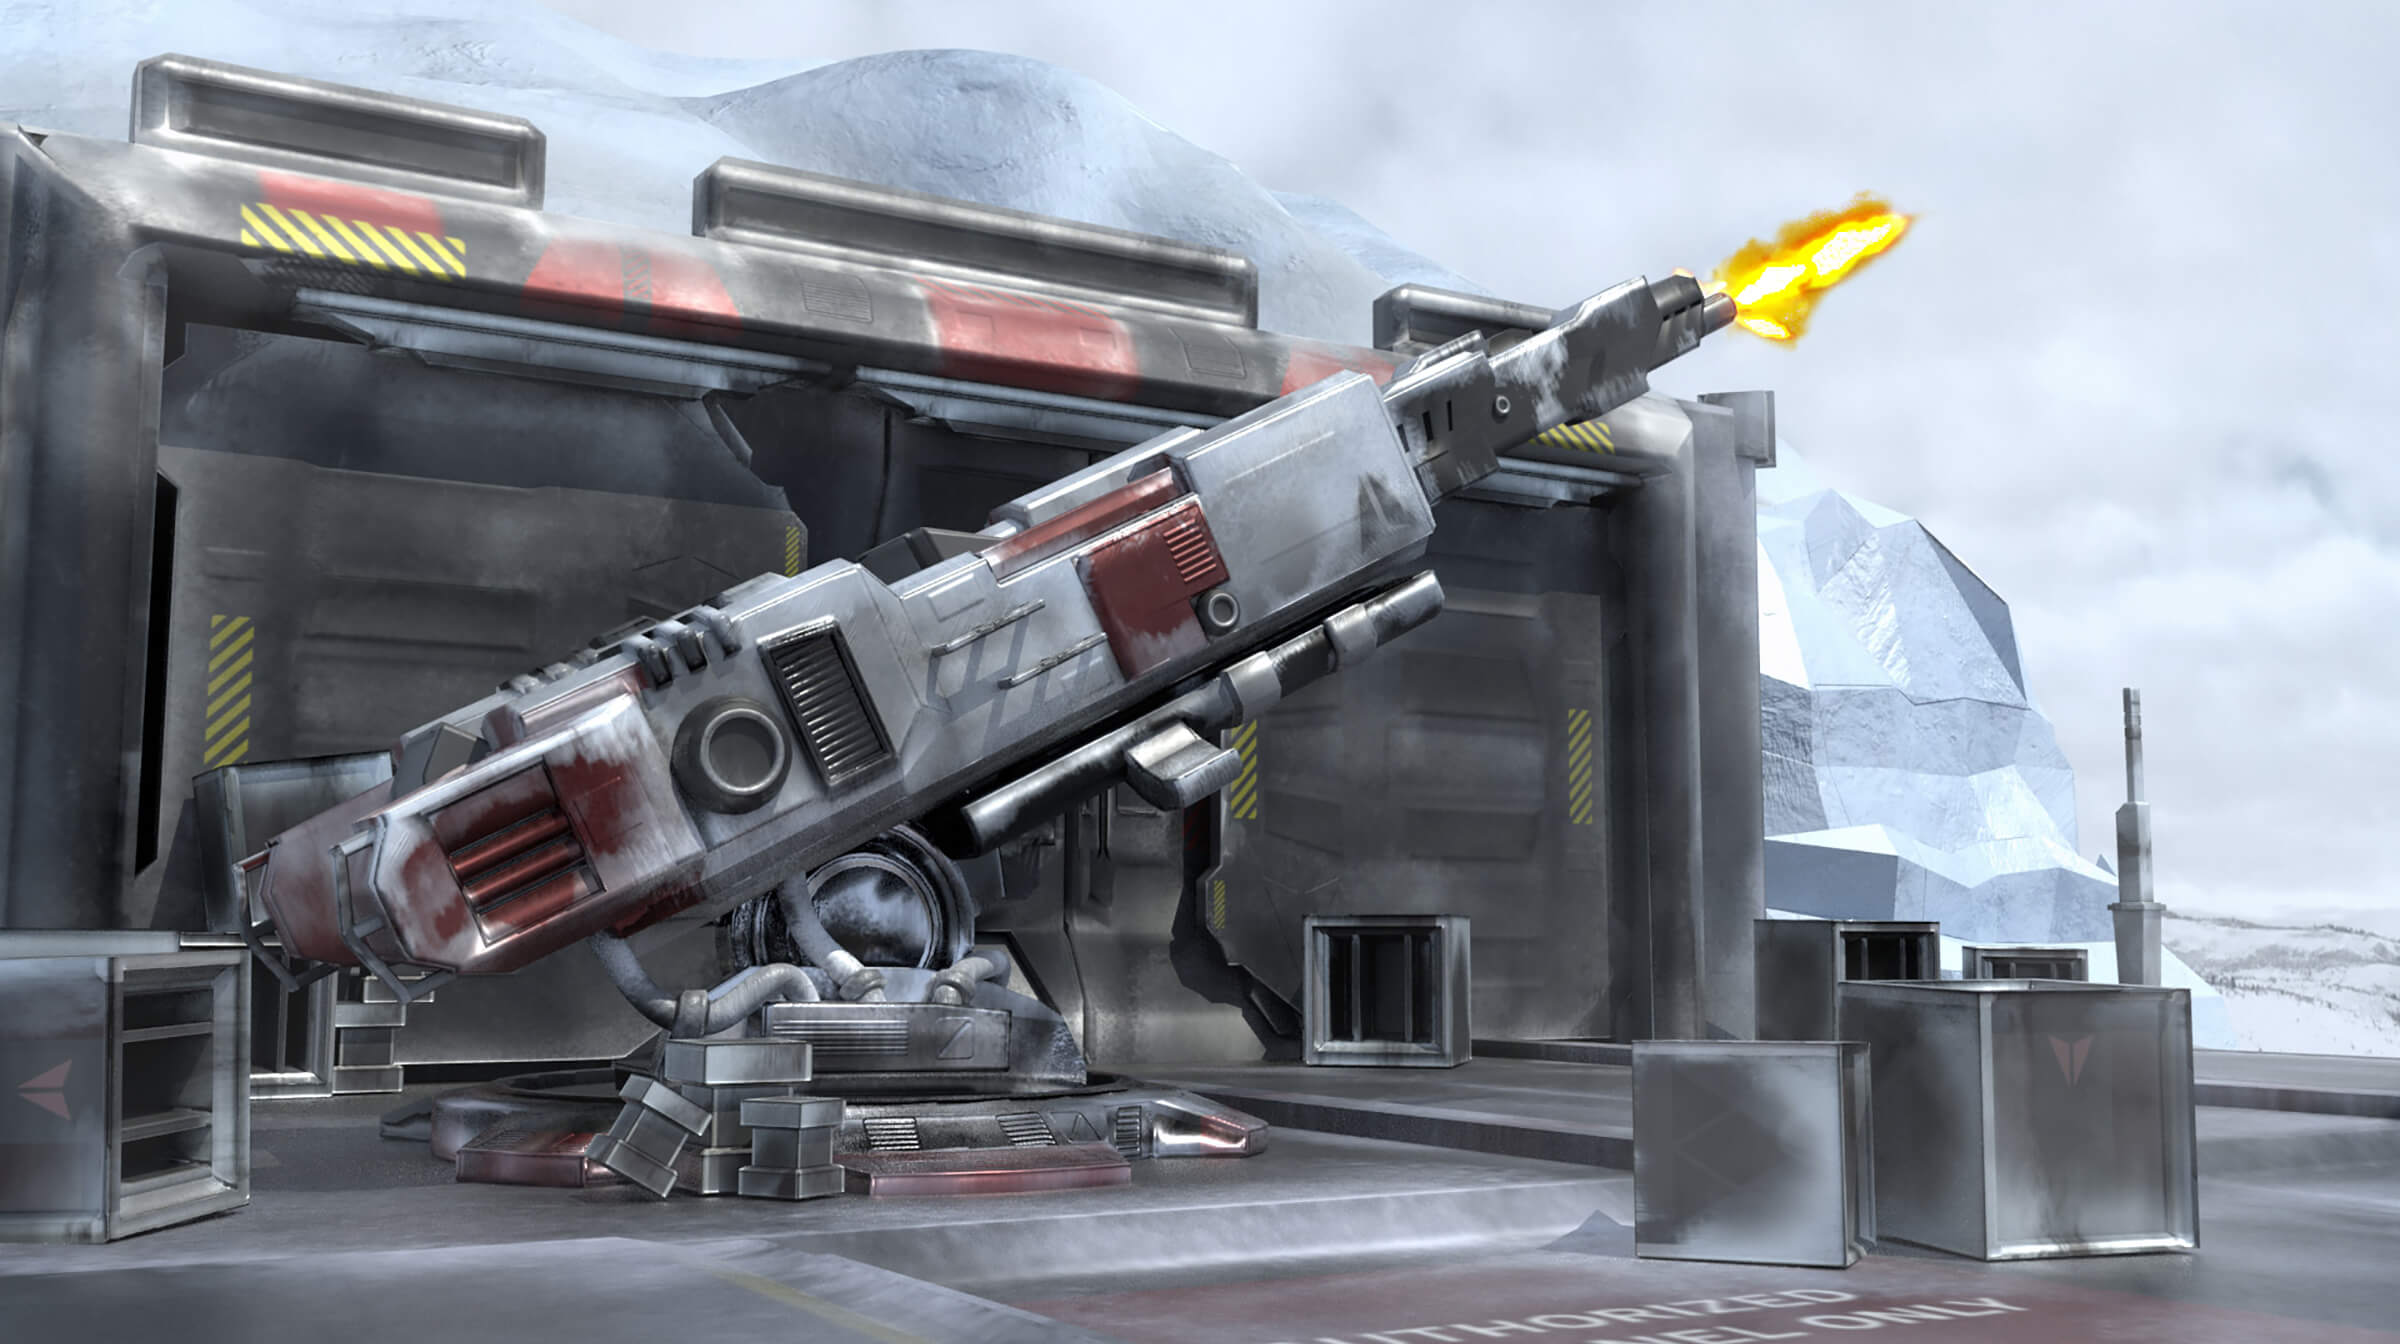 A large weapon fires into a wintry sky